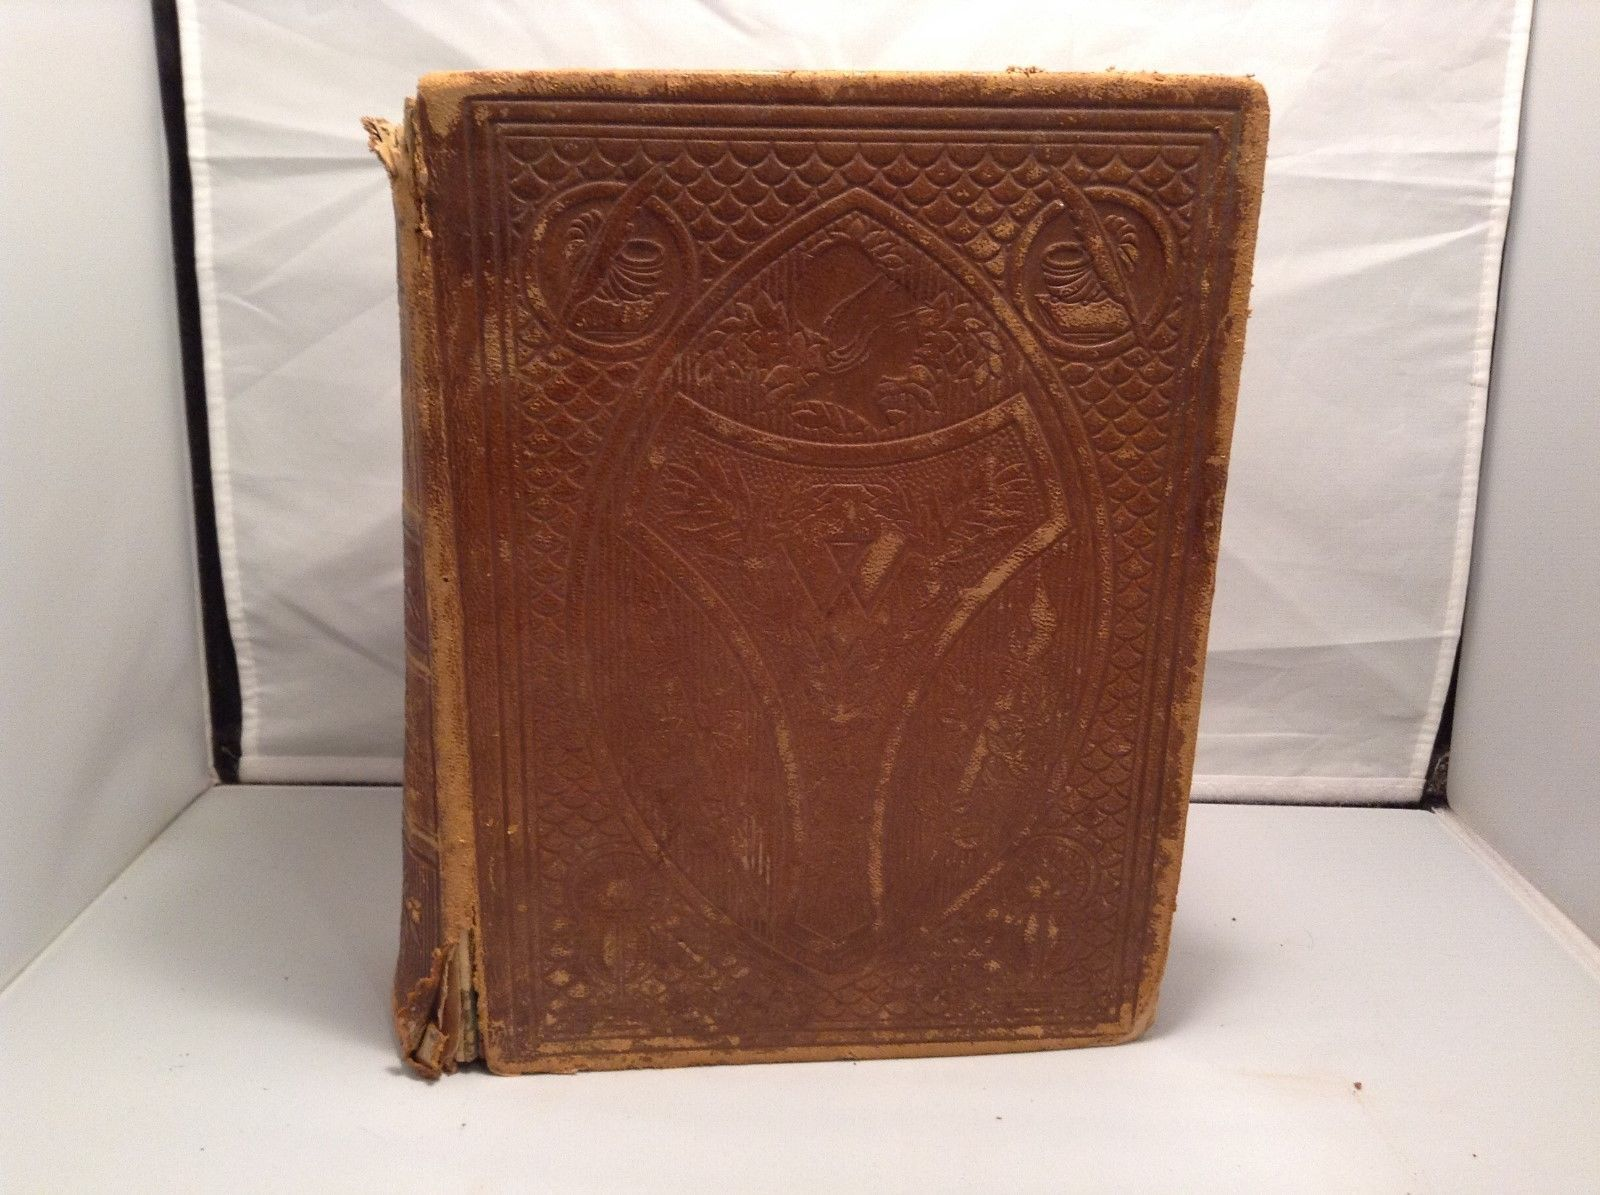 Antique Leather Bound Webster Dictionary